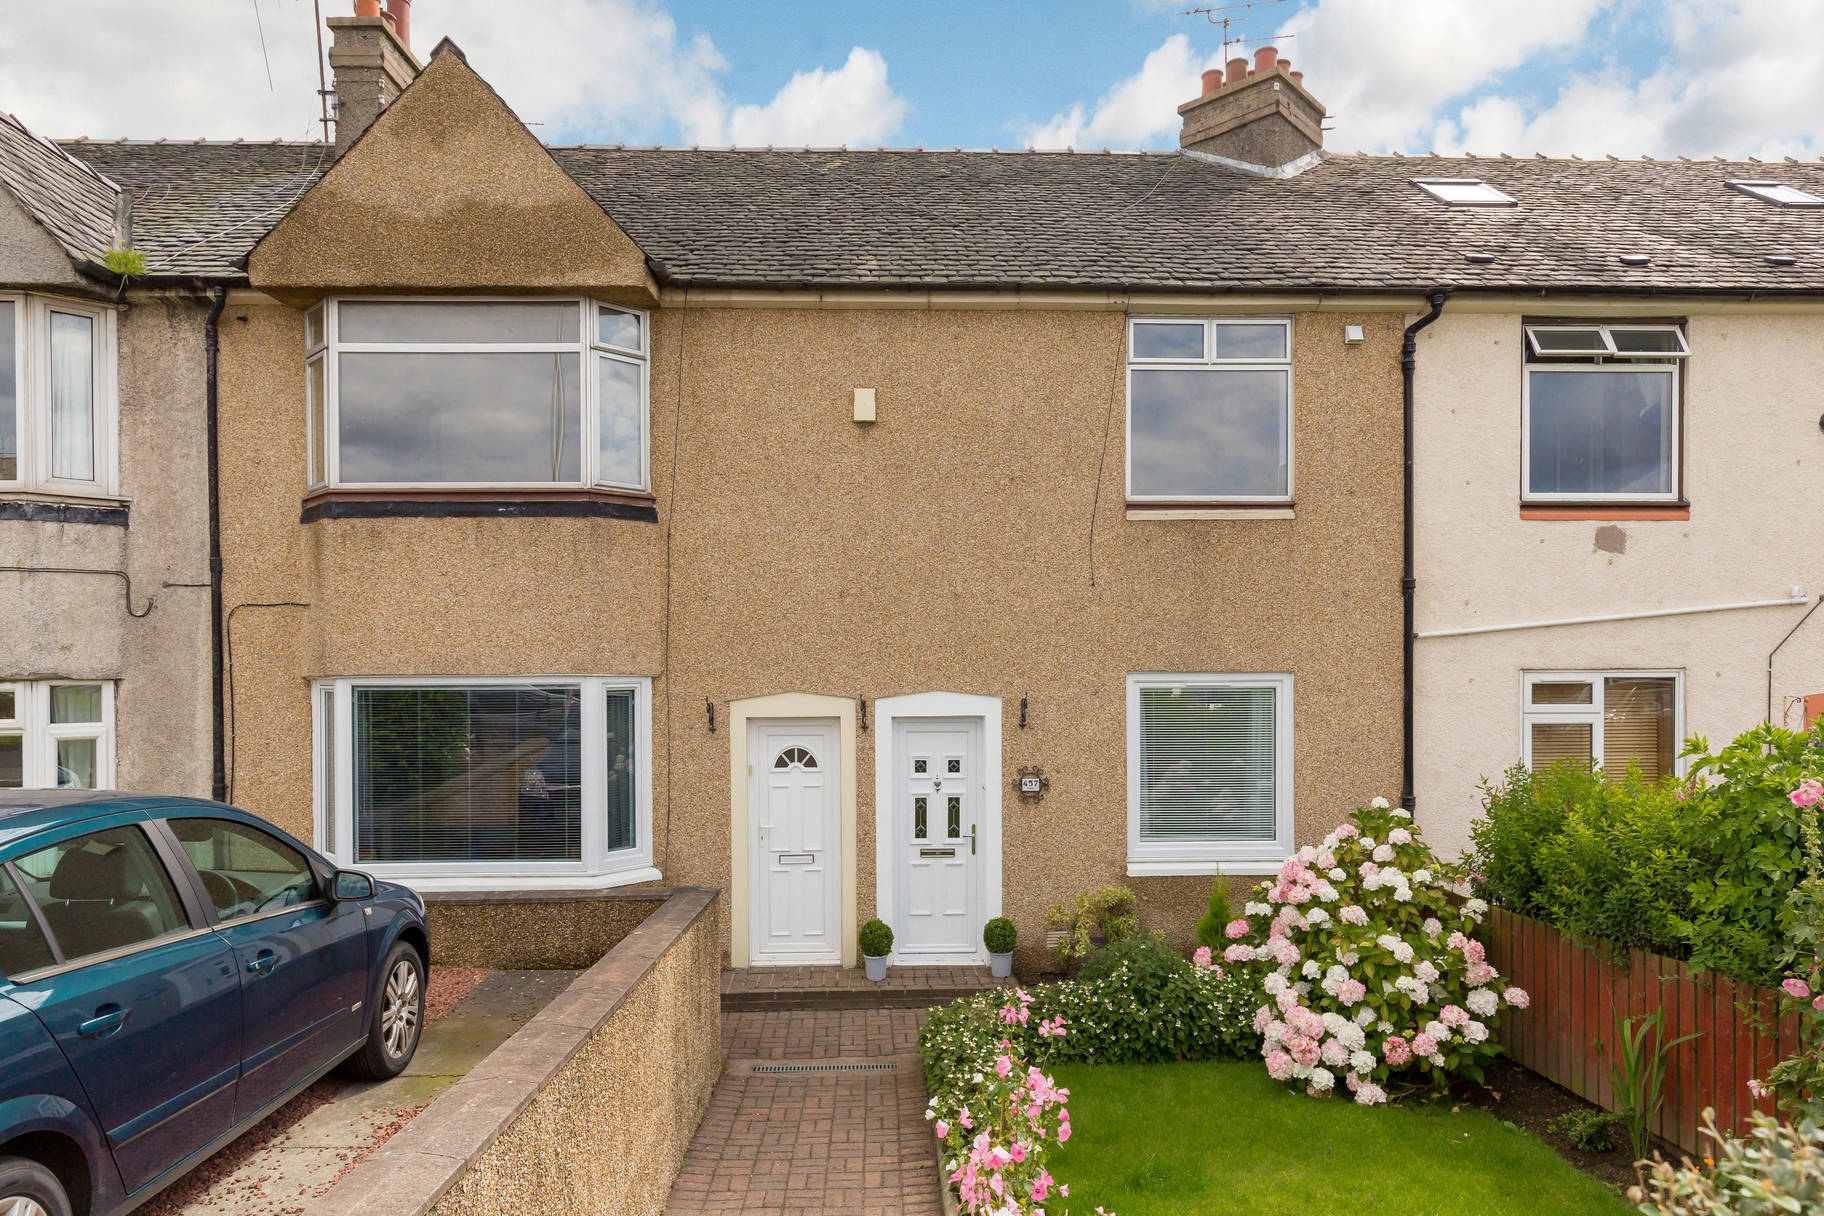 455 Calder Road, Edinburgh, EH11 4AN